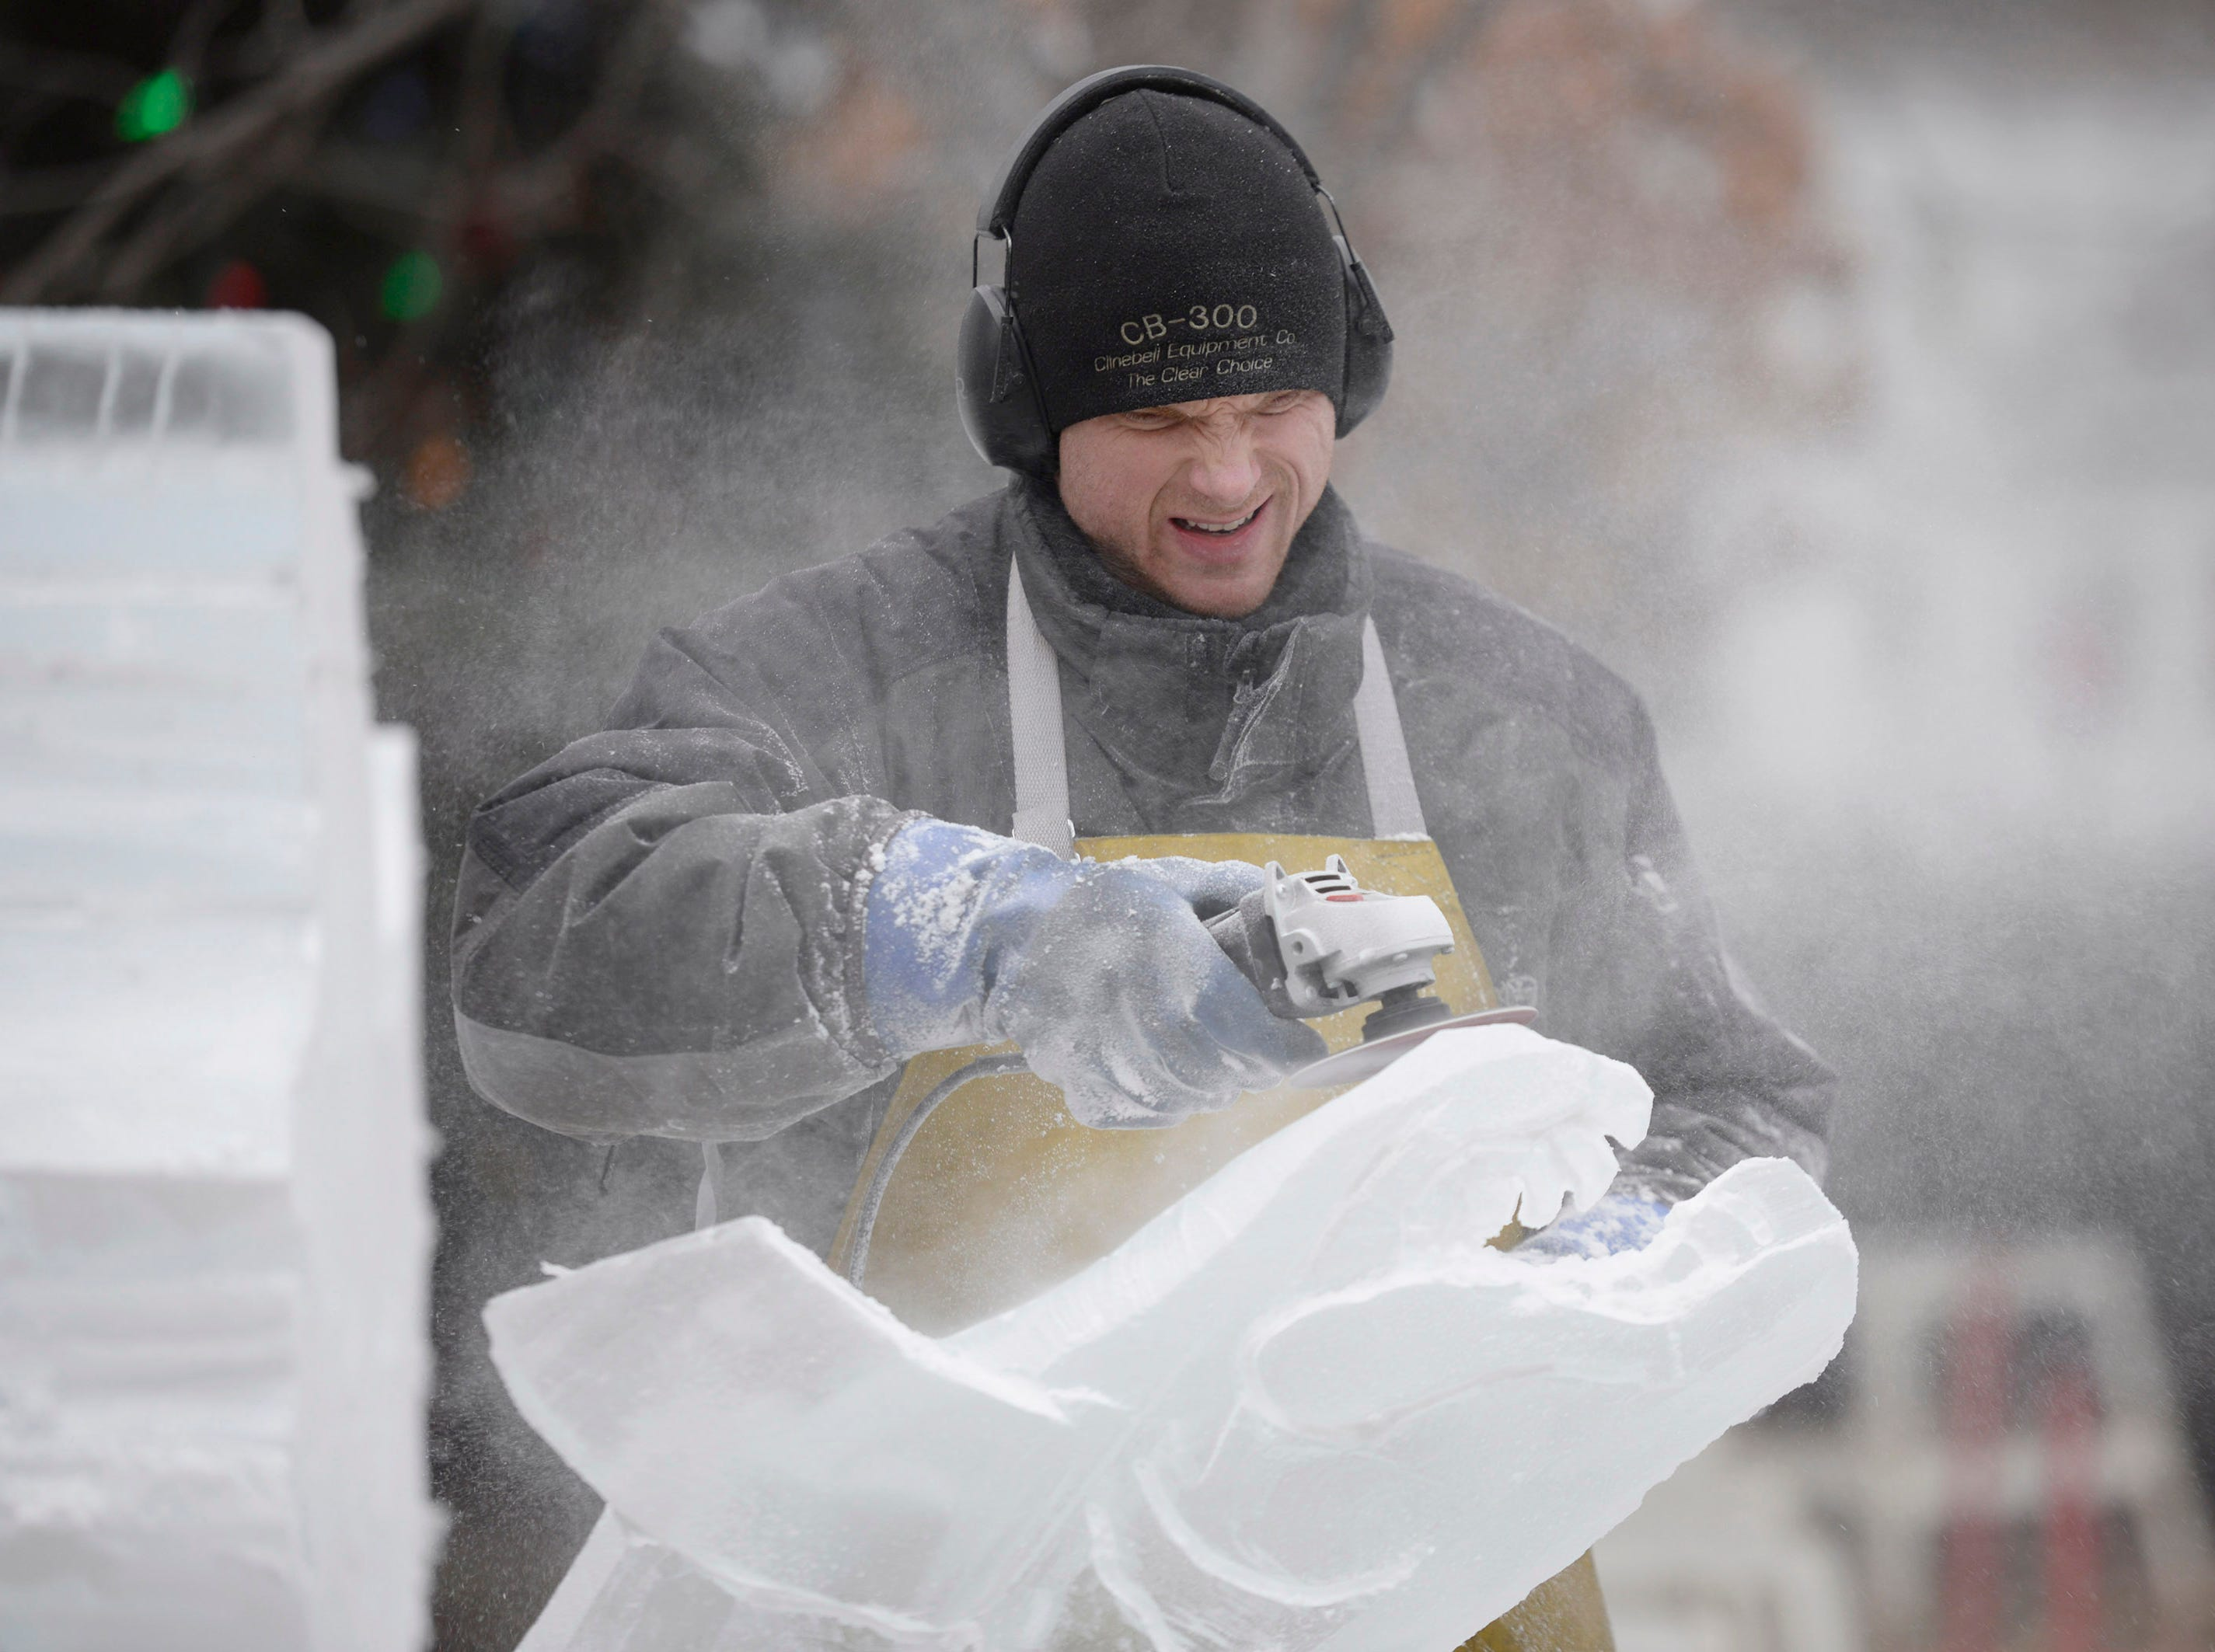 Clinton Rich carves the head of a fish that will be moved onto the blocks behind him Jan. 9 preparing for the Plymouth Ice Festival that runs Jan. 11-13.